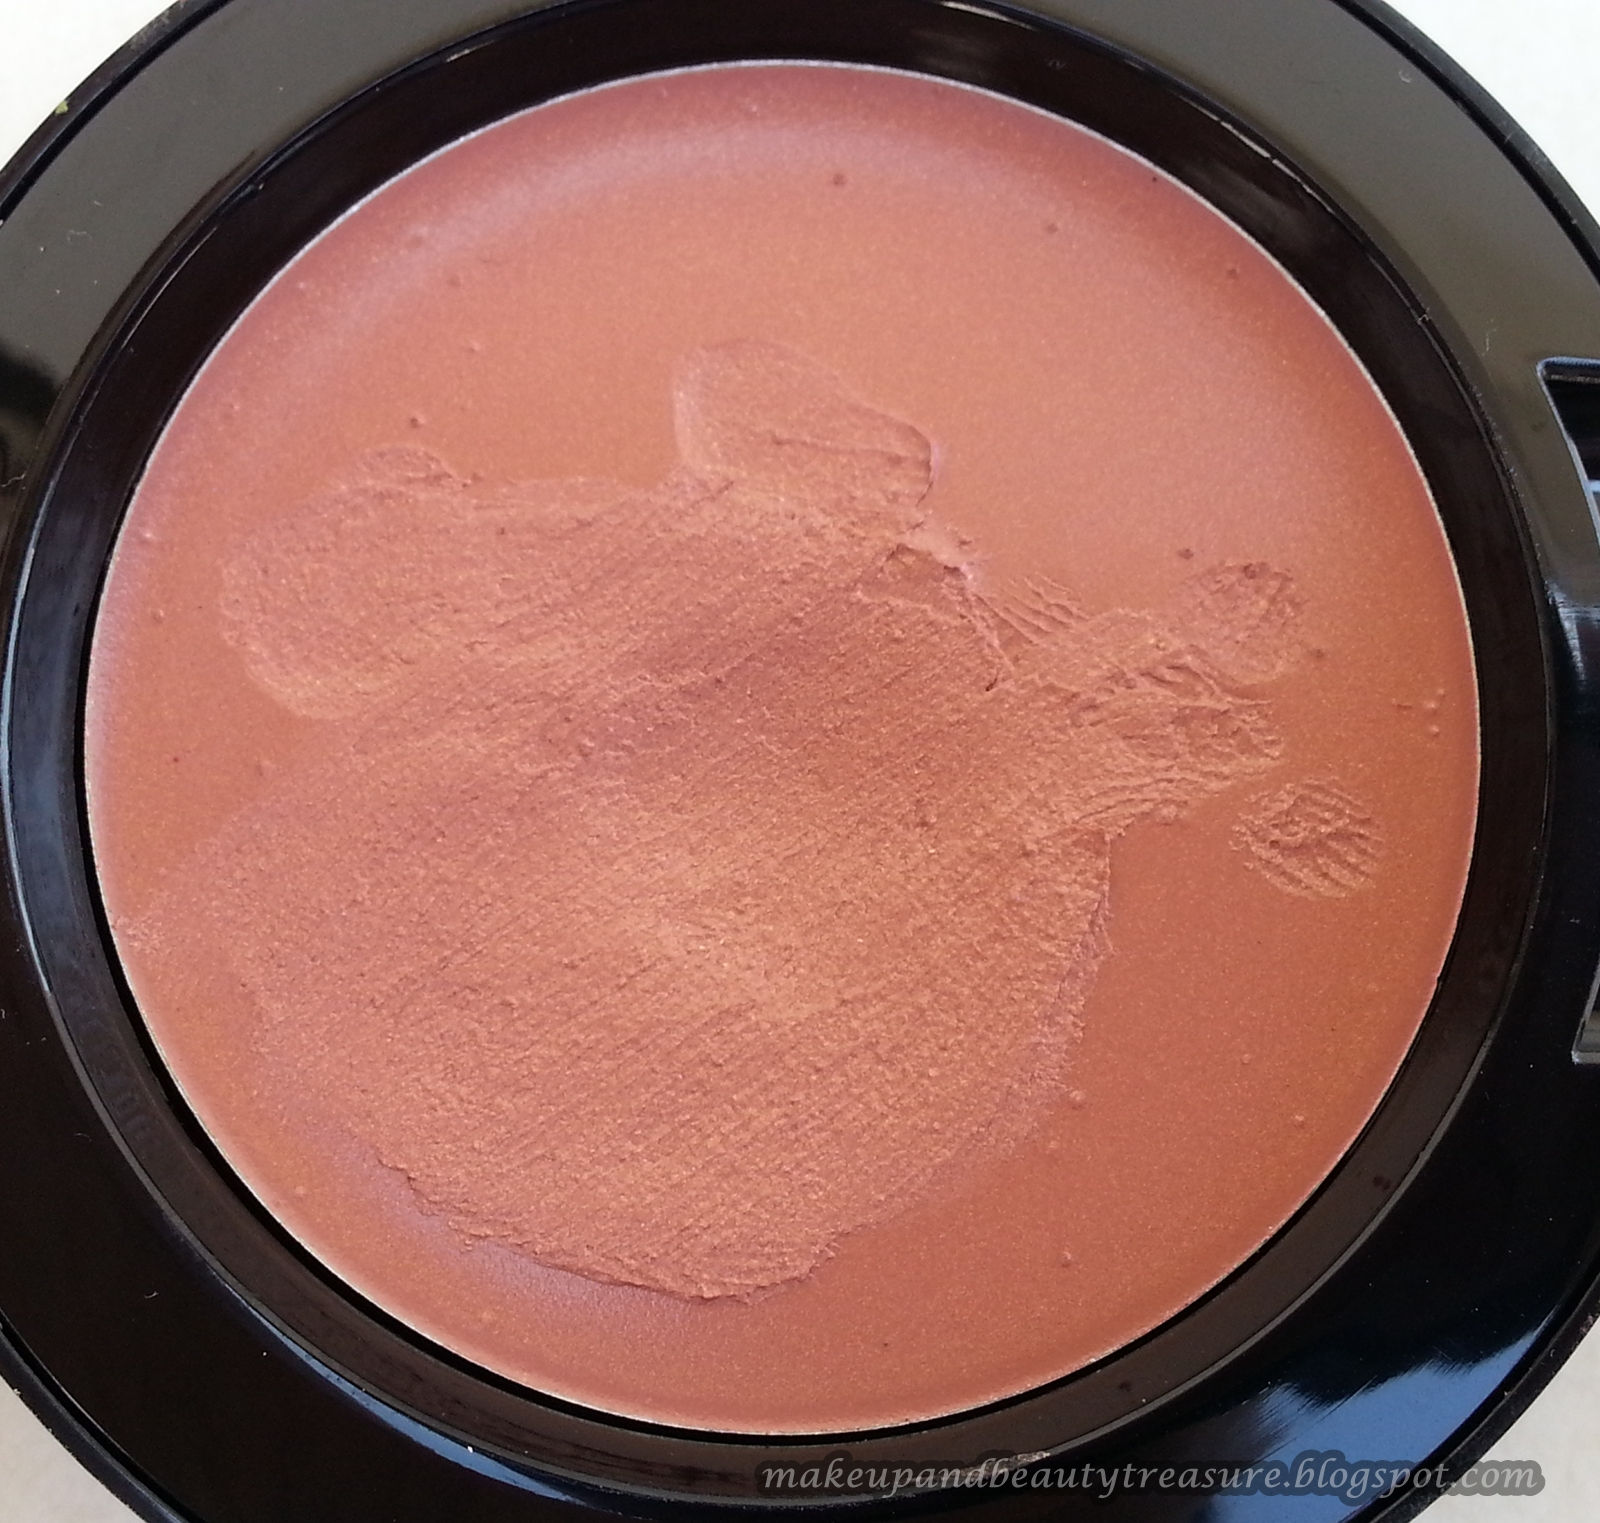 Makeup And Beauty Treasure Nyx Rouge Cream Blush Golden 10 Review